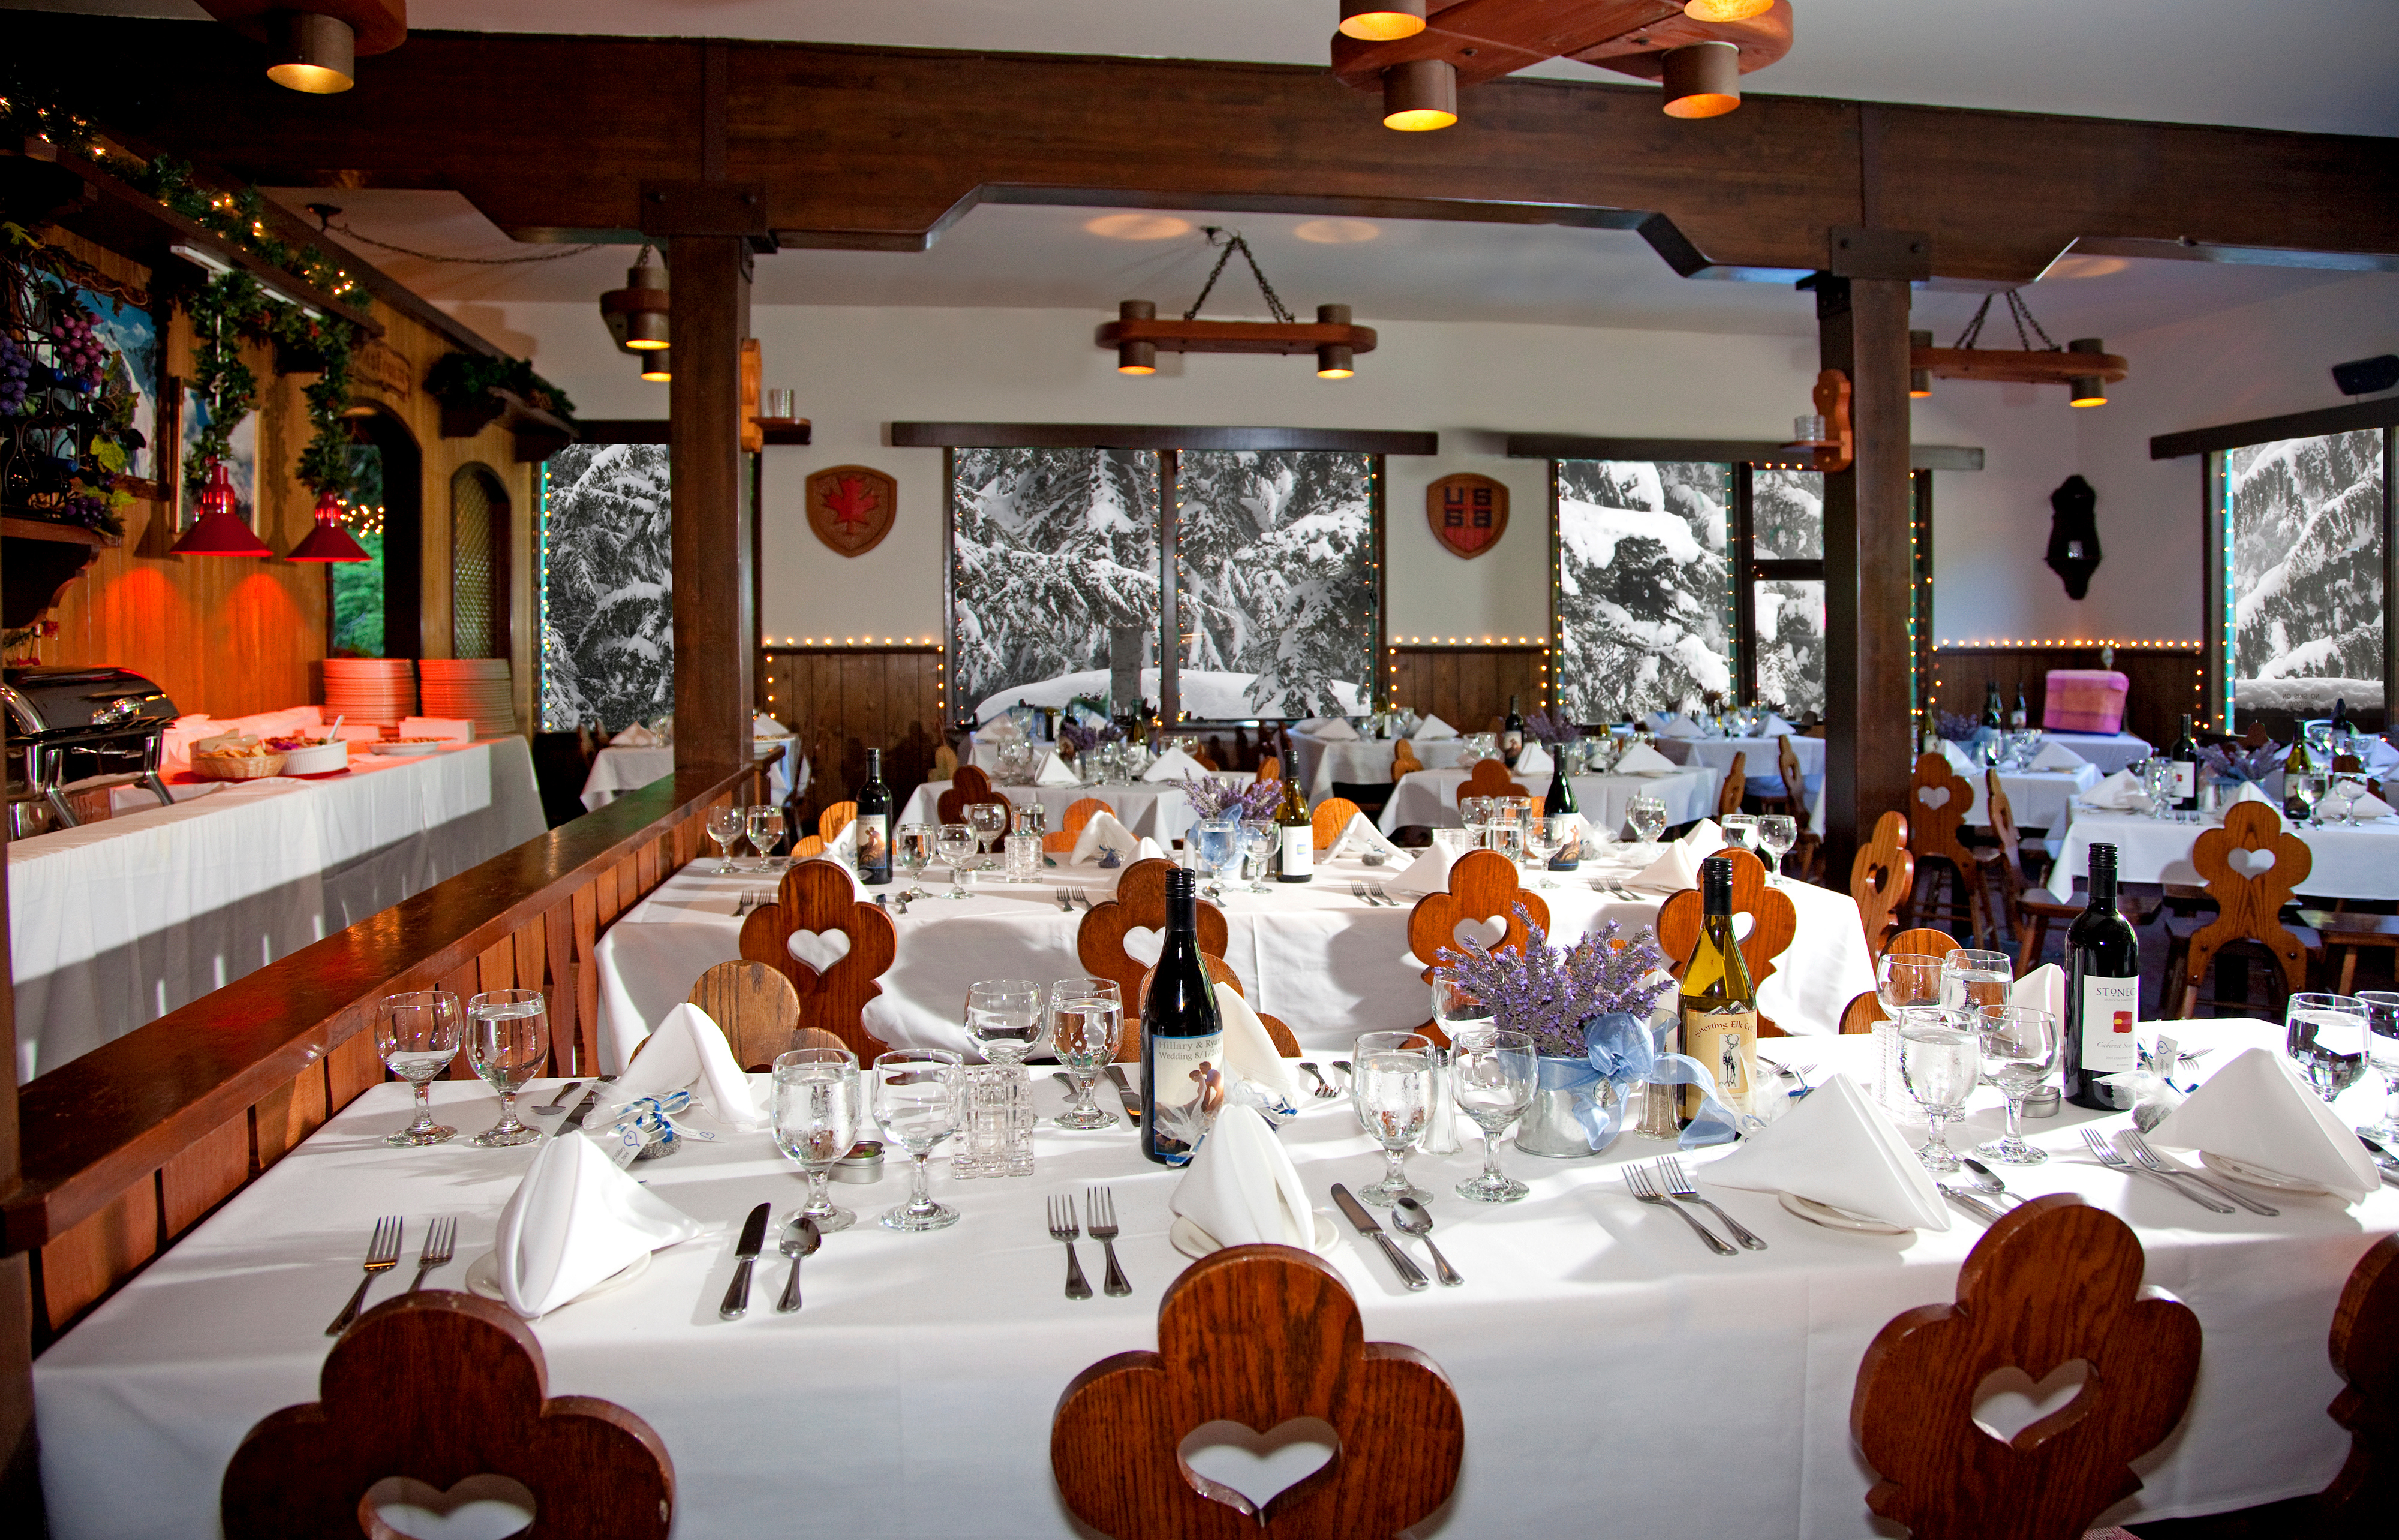 Alpine_restaurant__white_tablecloth._jeff_caven_thumb